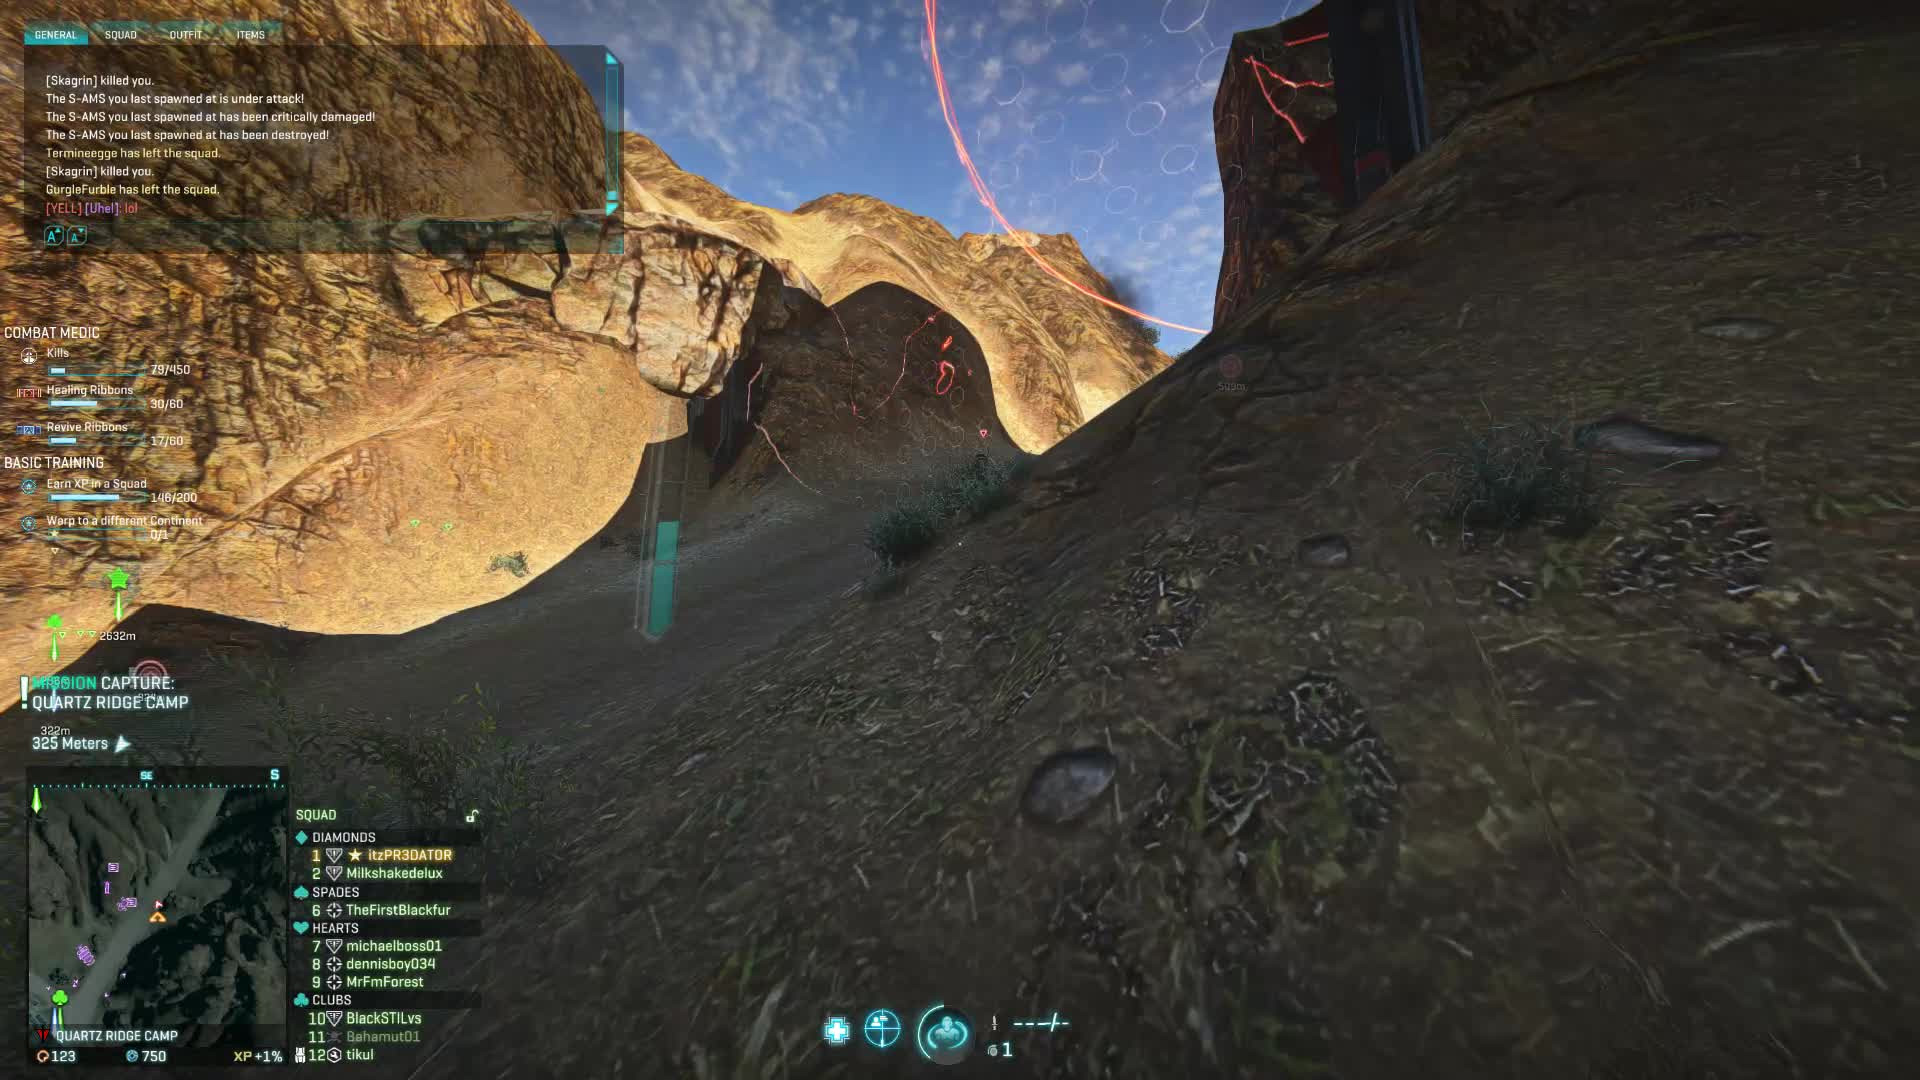 planetside 2, Perfectly Executed GIFs